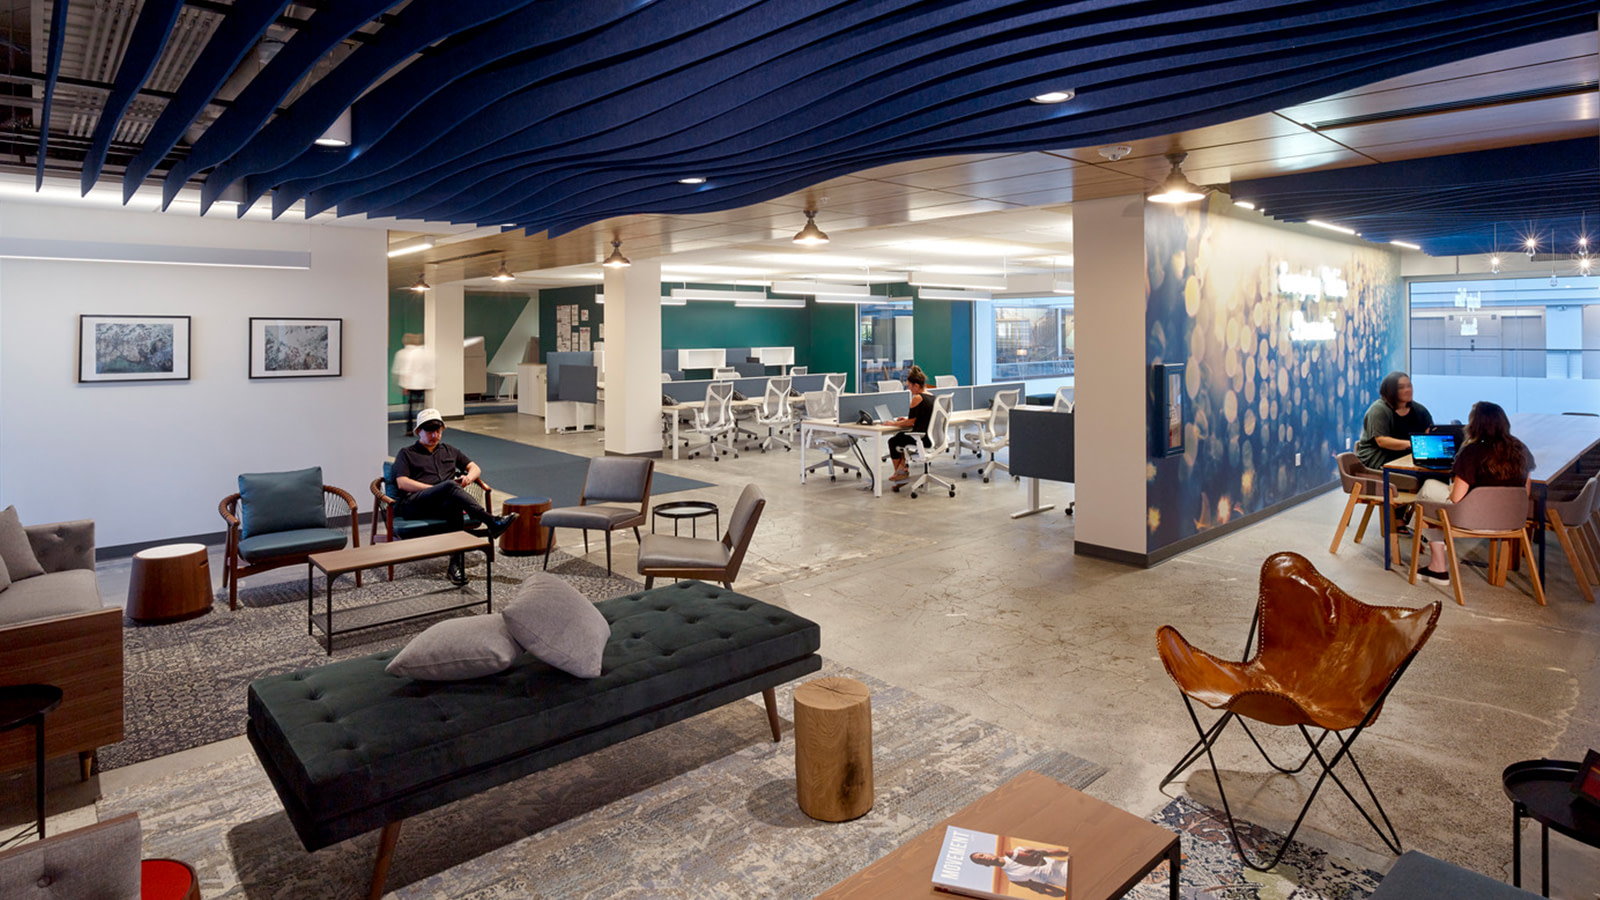 Rugs and furniture at huddle areas adjacent to the Whole Foods Seattle open work space.